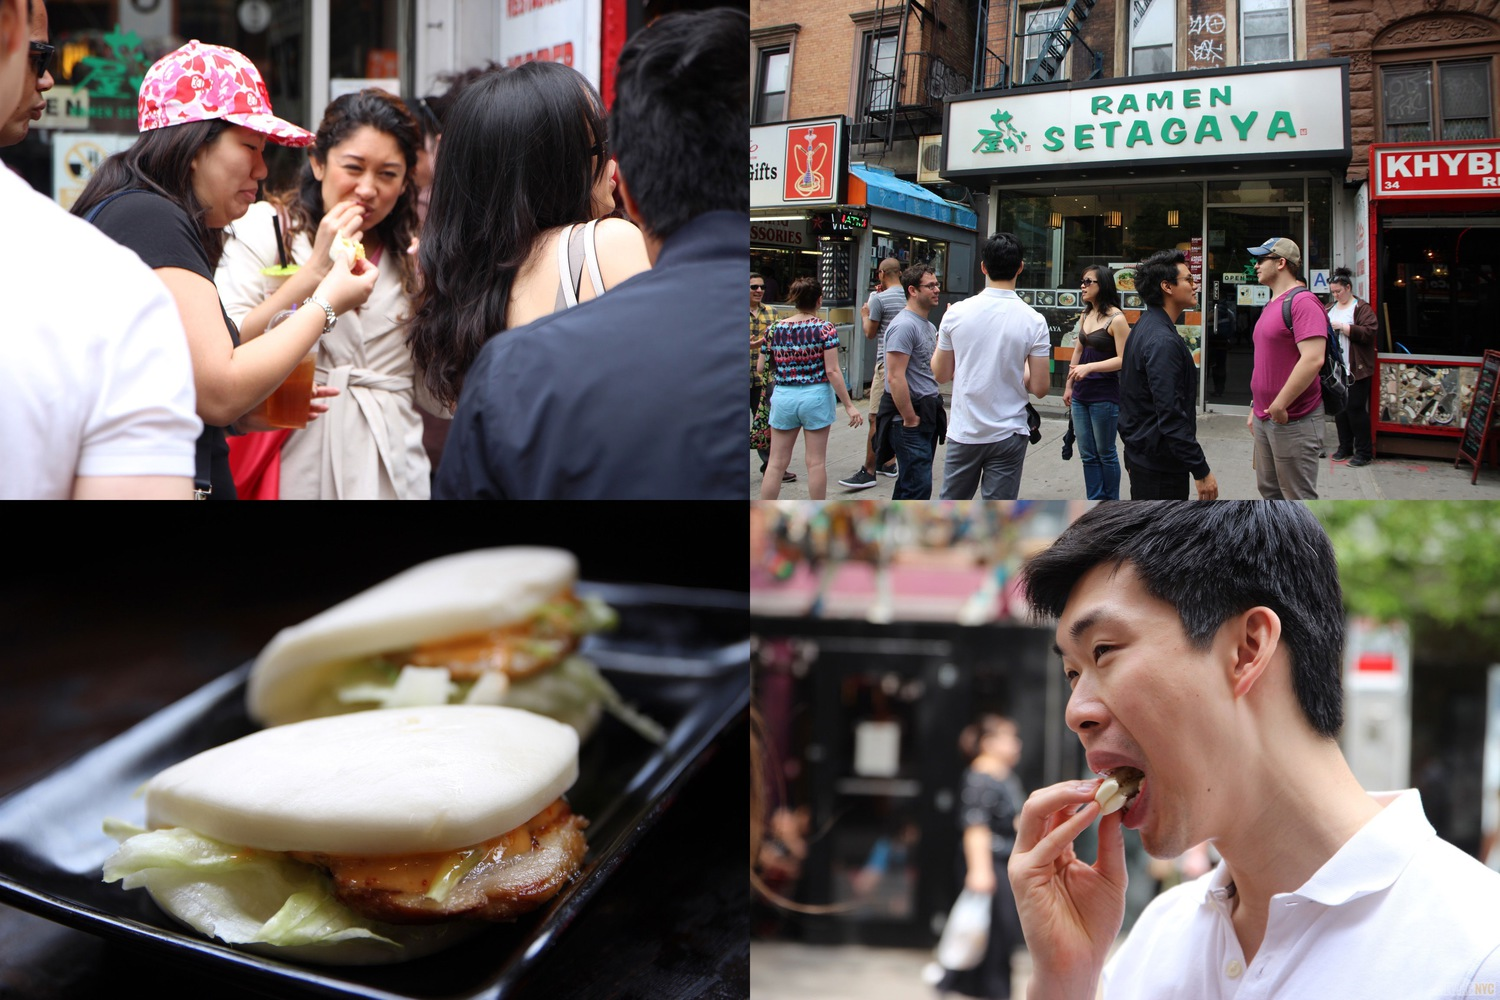 Ramen Setagaya | 2016 Viewing NYC East Village Pork Bun Crawl